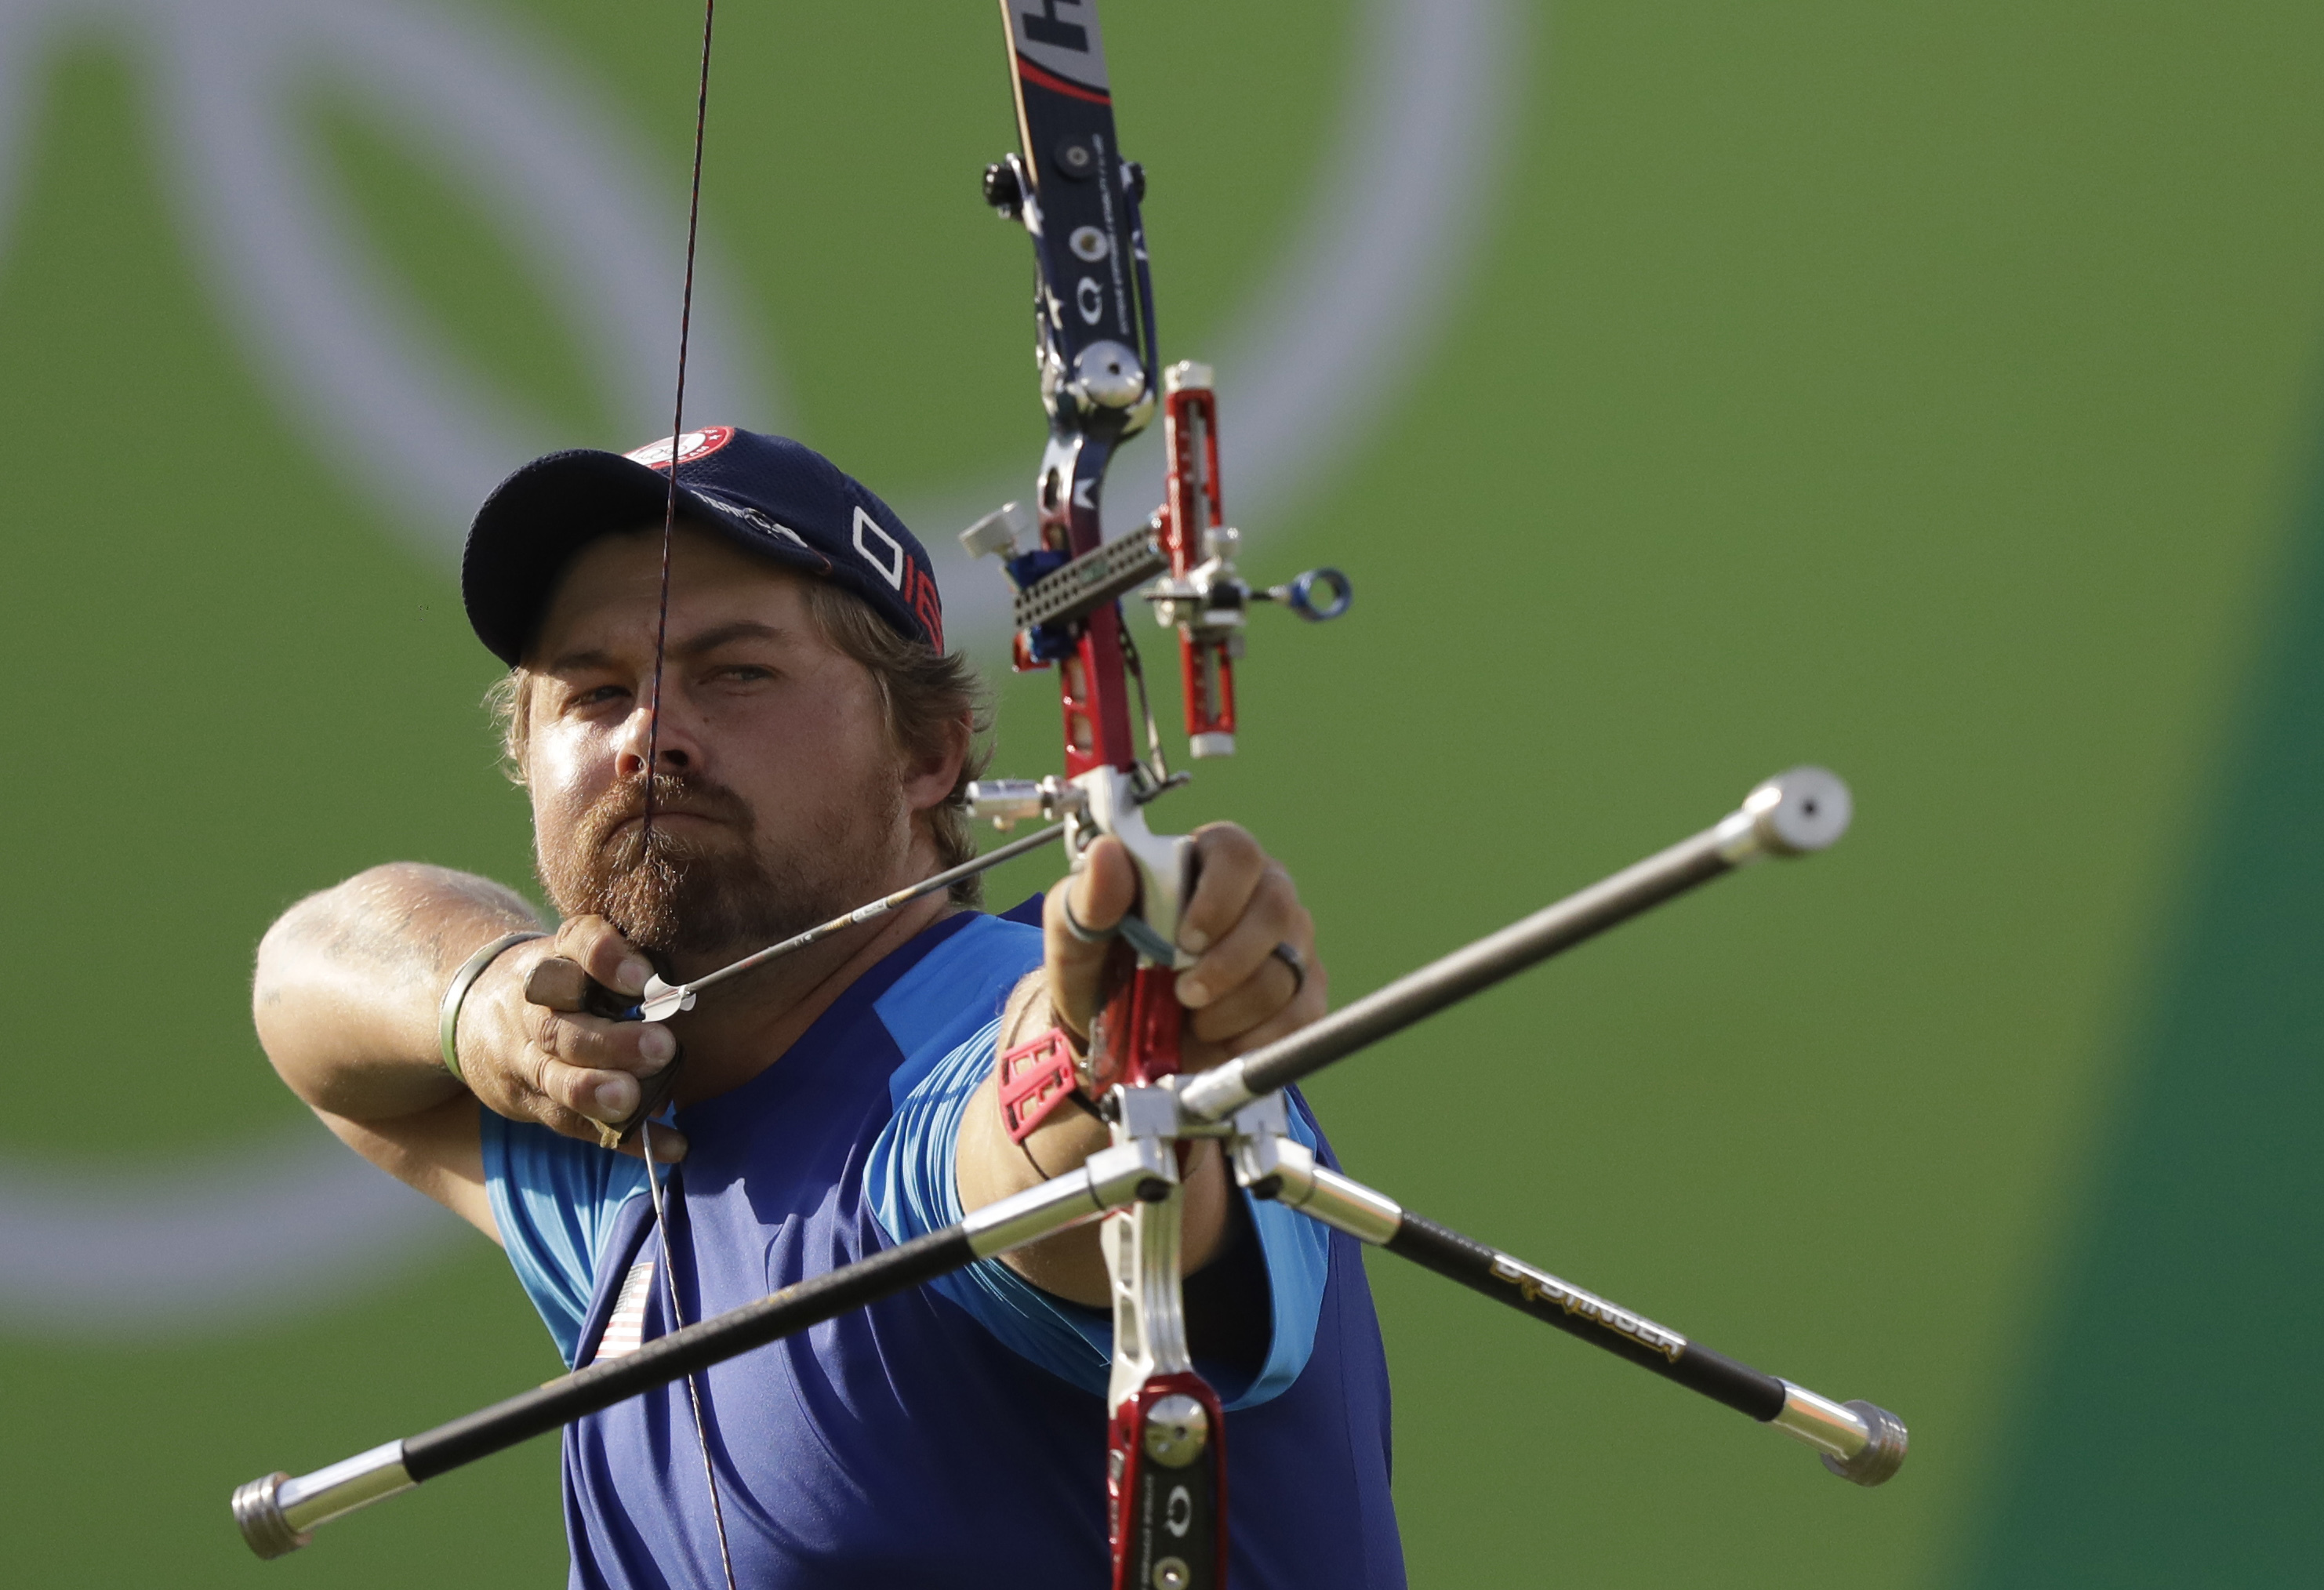 Brady Ellison of the United States aims for the target during the men's team archery competition at the Sambadrome venue during the 2016 Summer Olympics in Rio de Janeiro, Brazil, Saturday, Aug. 6, 2016.(AP Photo/Natacha Pisarenko)